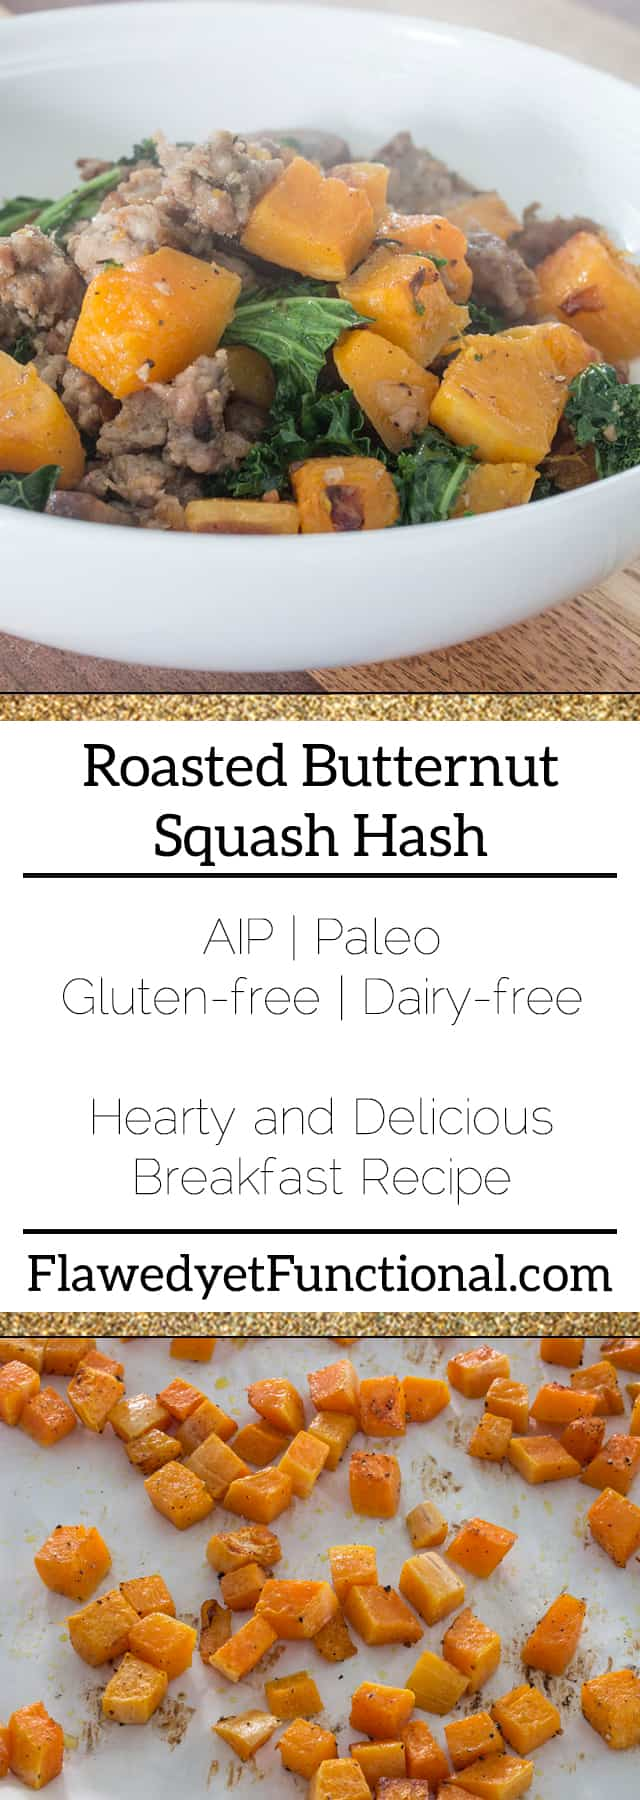 Roasted Butternut Squash Hash